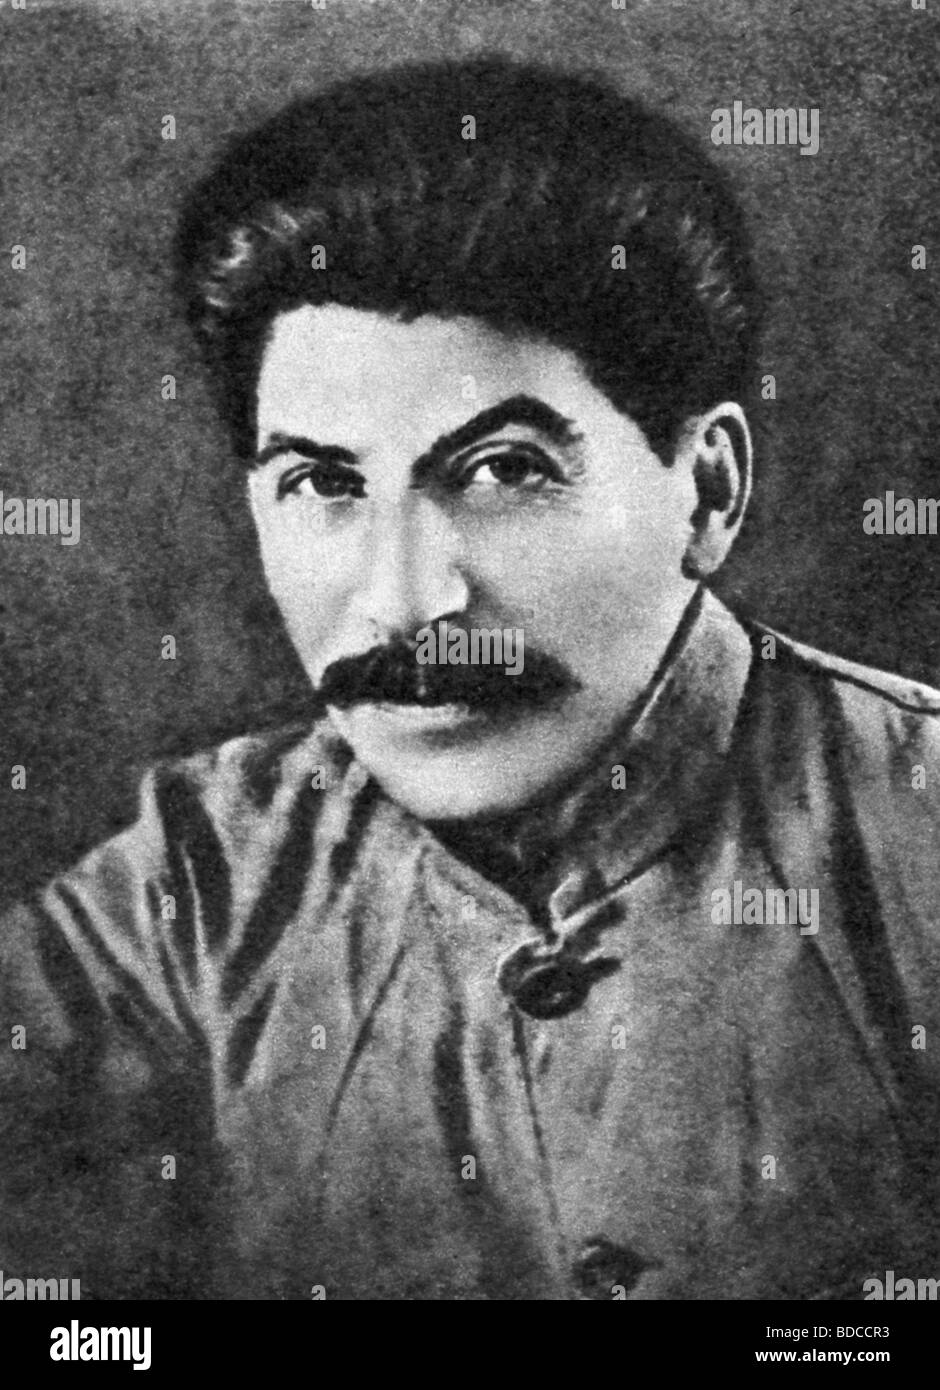 stalin evaluation of his leadership essay 2017-3-17 joseph stalin was the communist, totalitarian leader of the soviet union (now called russia) from 1927 to 1953 as the creator of one of the most brutal reigns in history, stalin was responsible for the deaths of an estimated 20 to 60 million of his own people, mostly from widespread famines and.